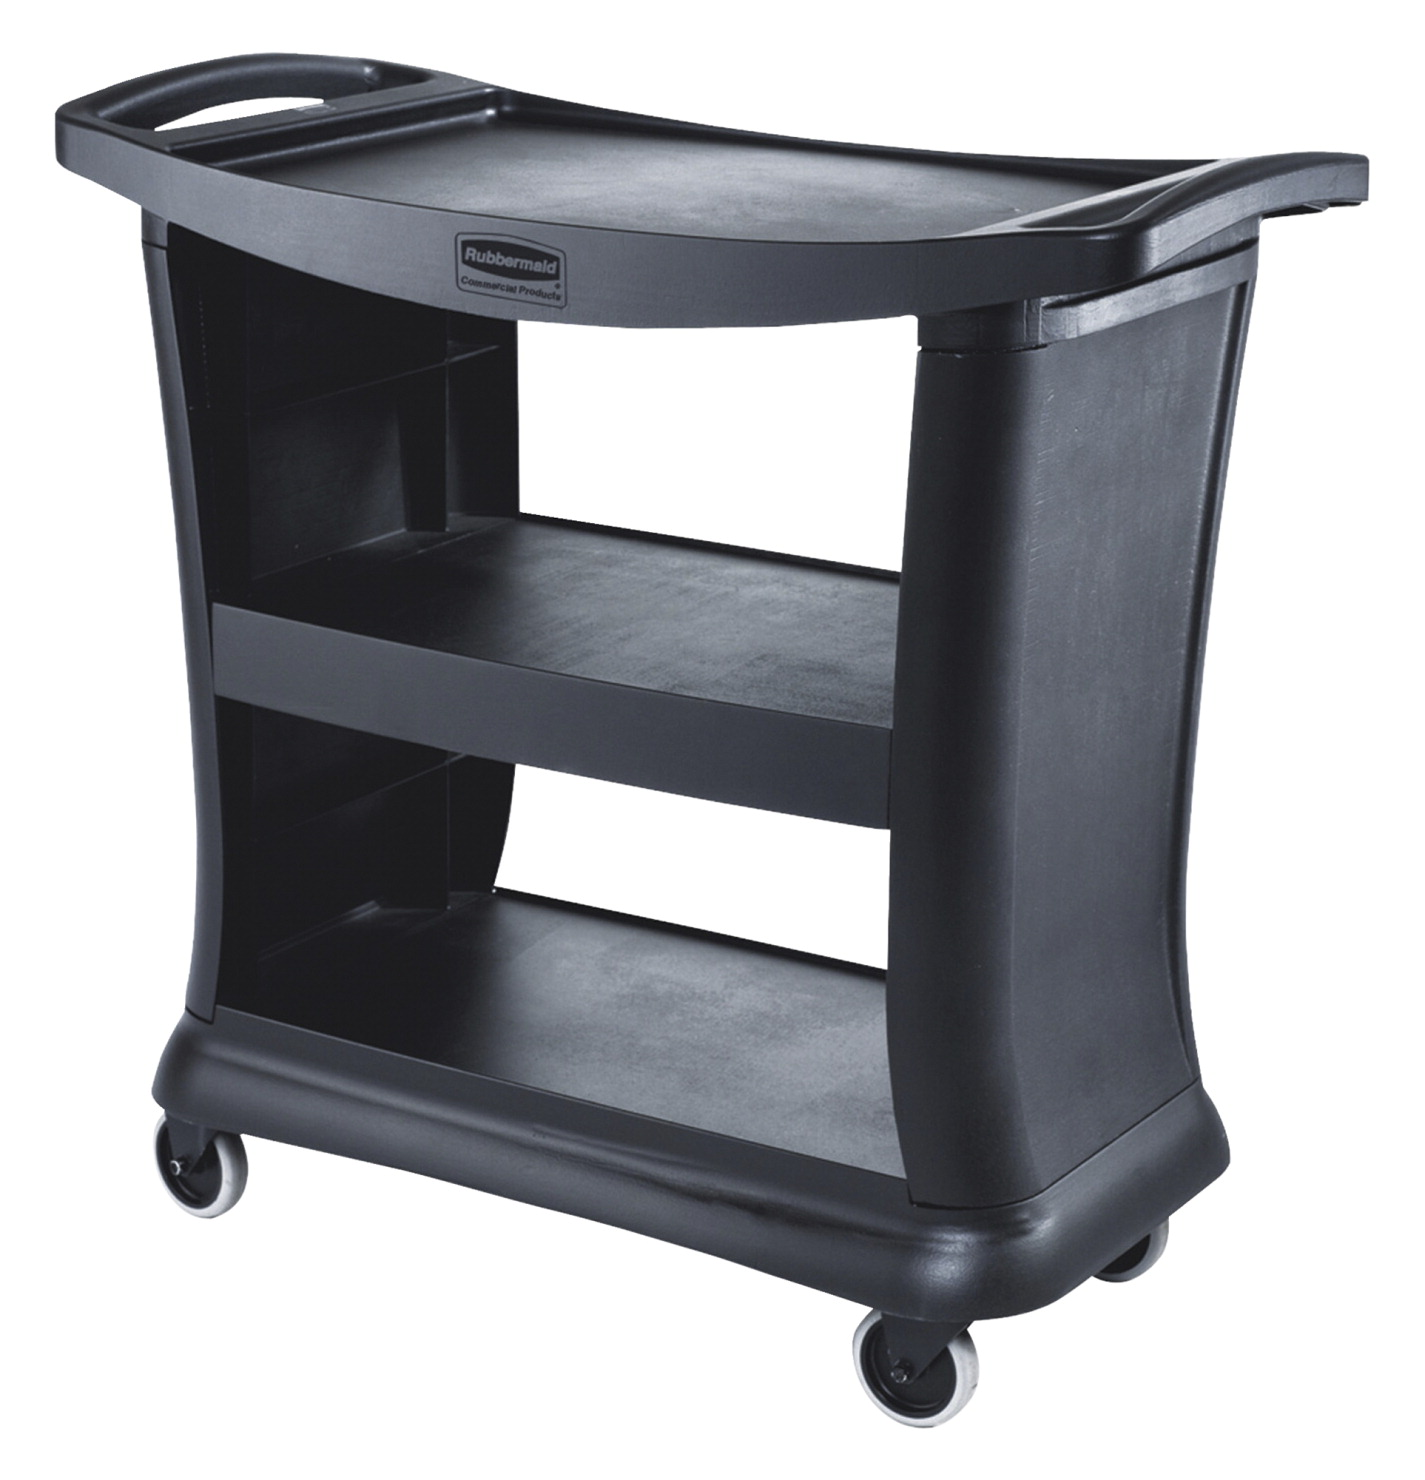 Rubbermaid Mobile Cart, Black, 38-7/8 x 20-1/4 x 32 Inches, 300 Pounds